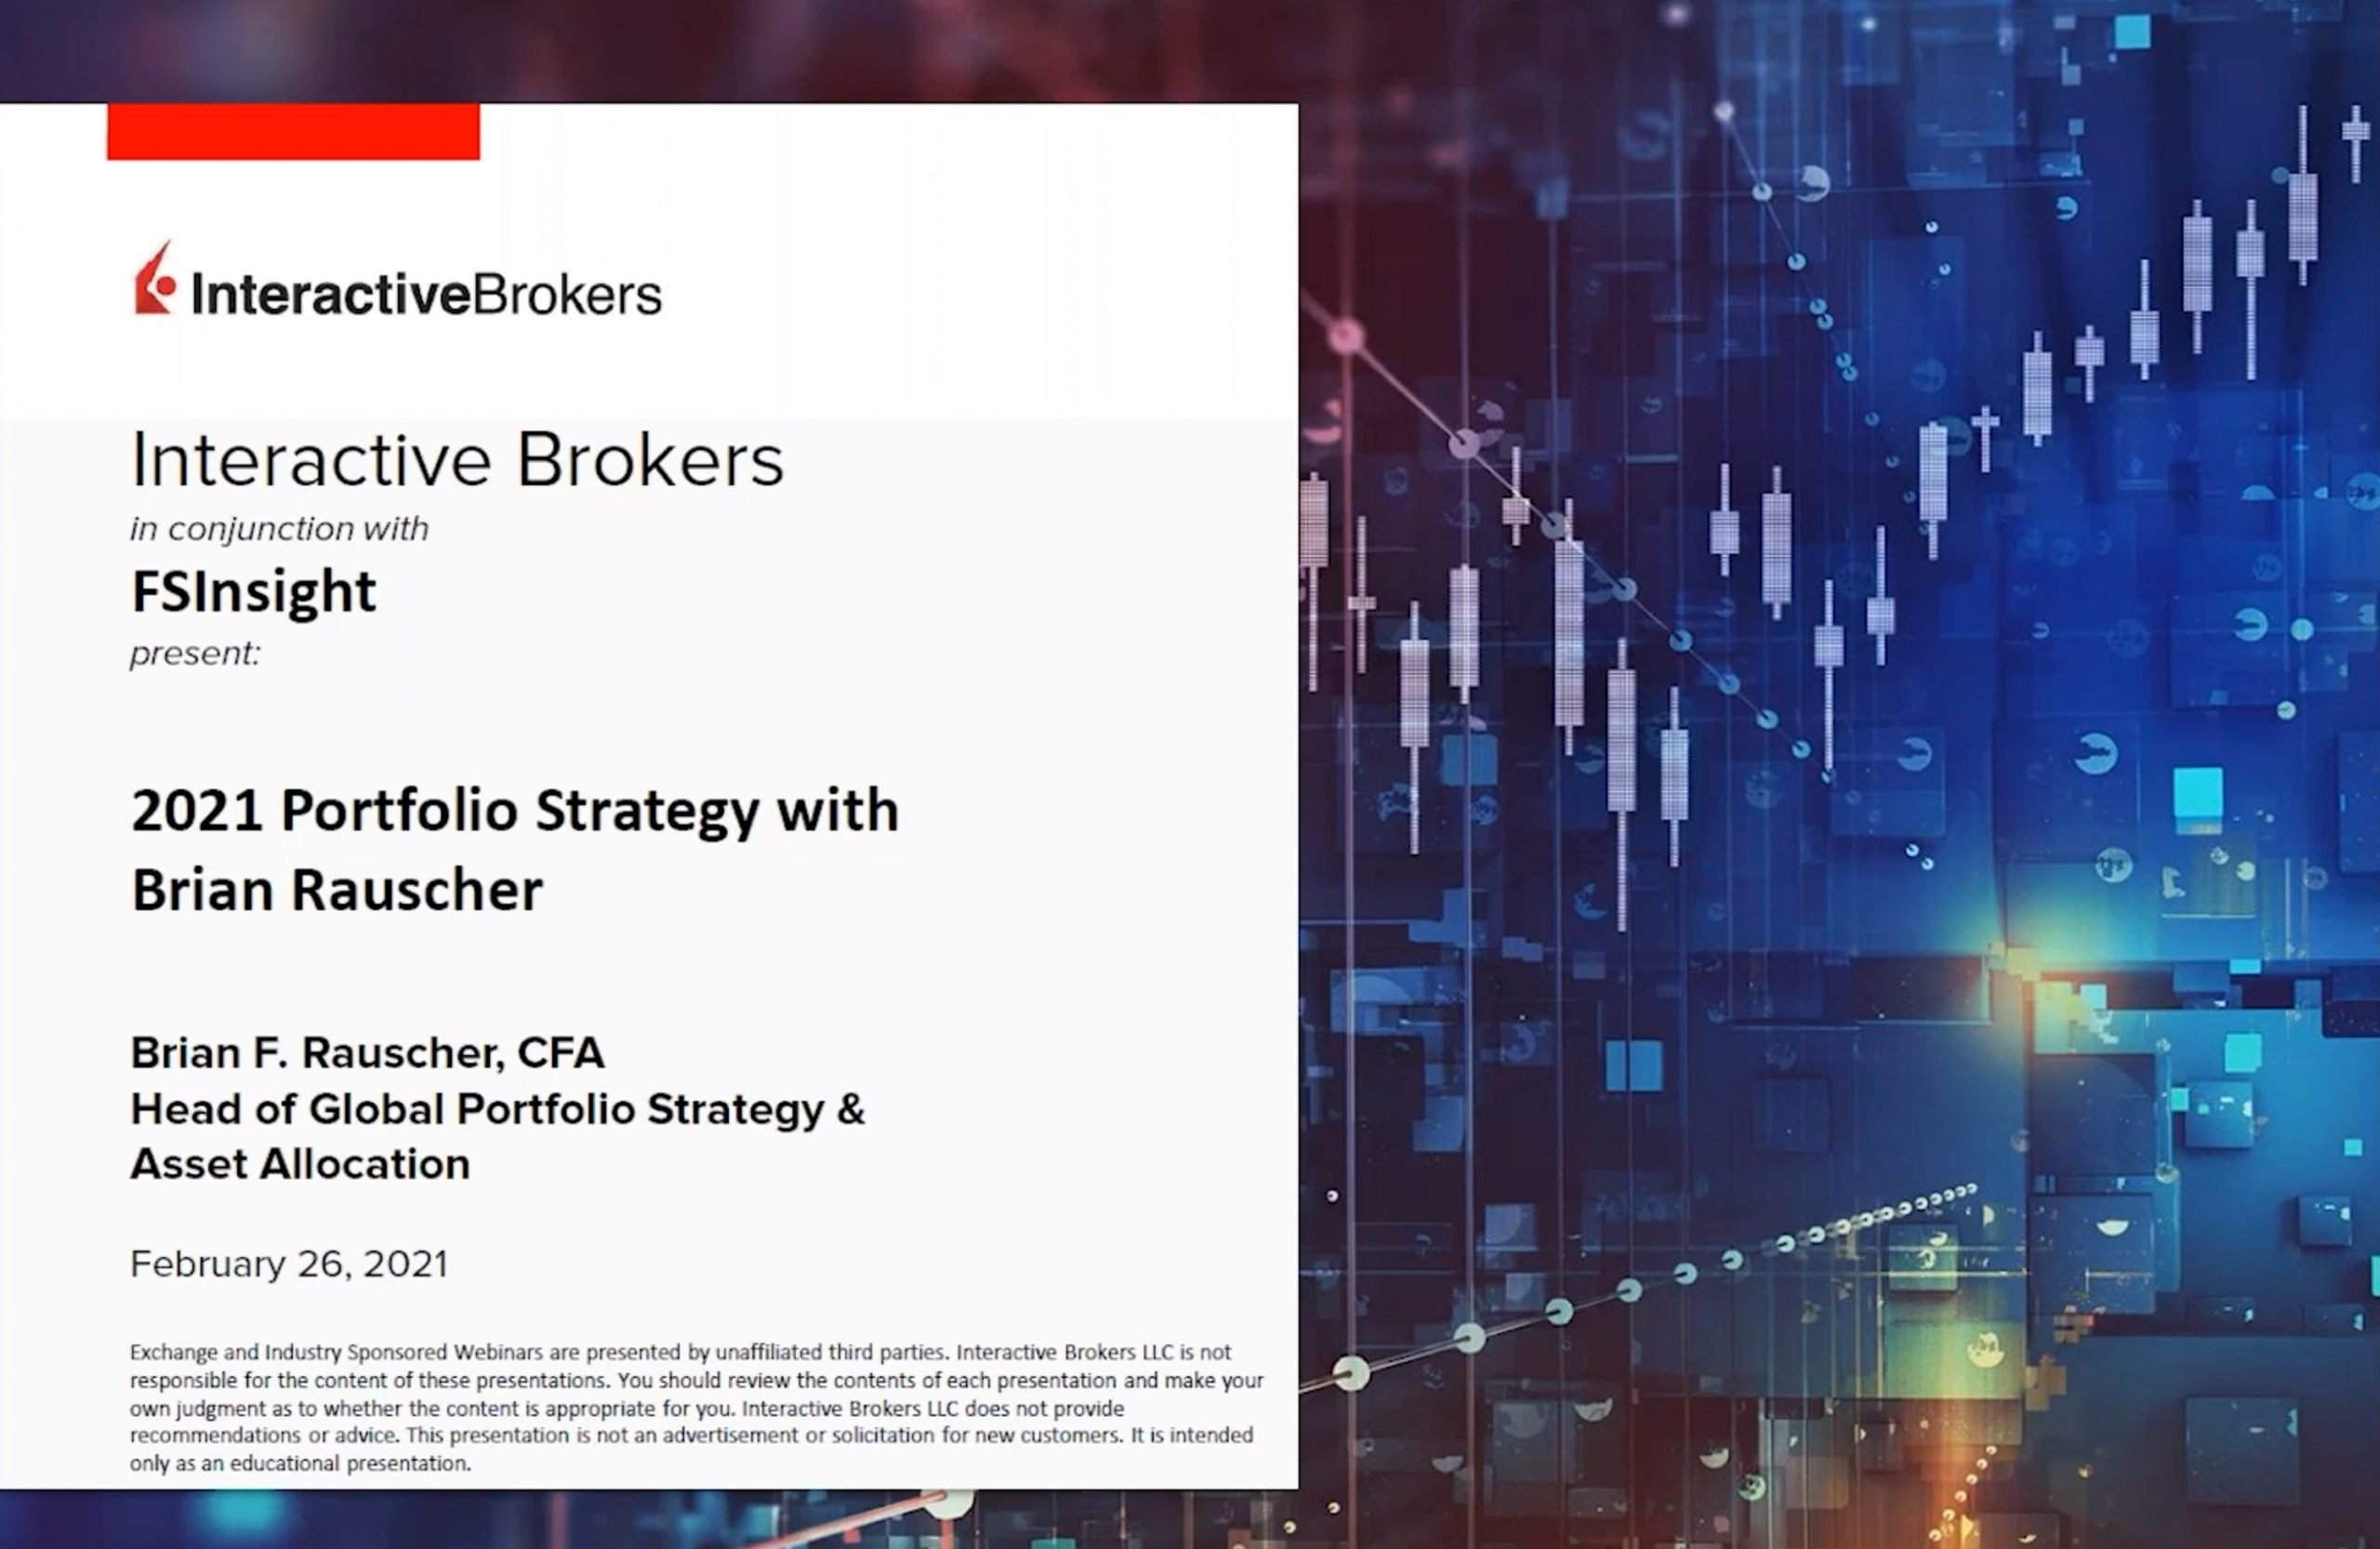 Interactive Brokers Webinar: 2021 Portfolio Strategy with Brian Rauscher